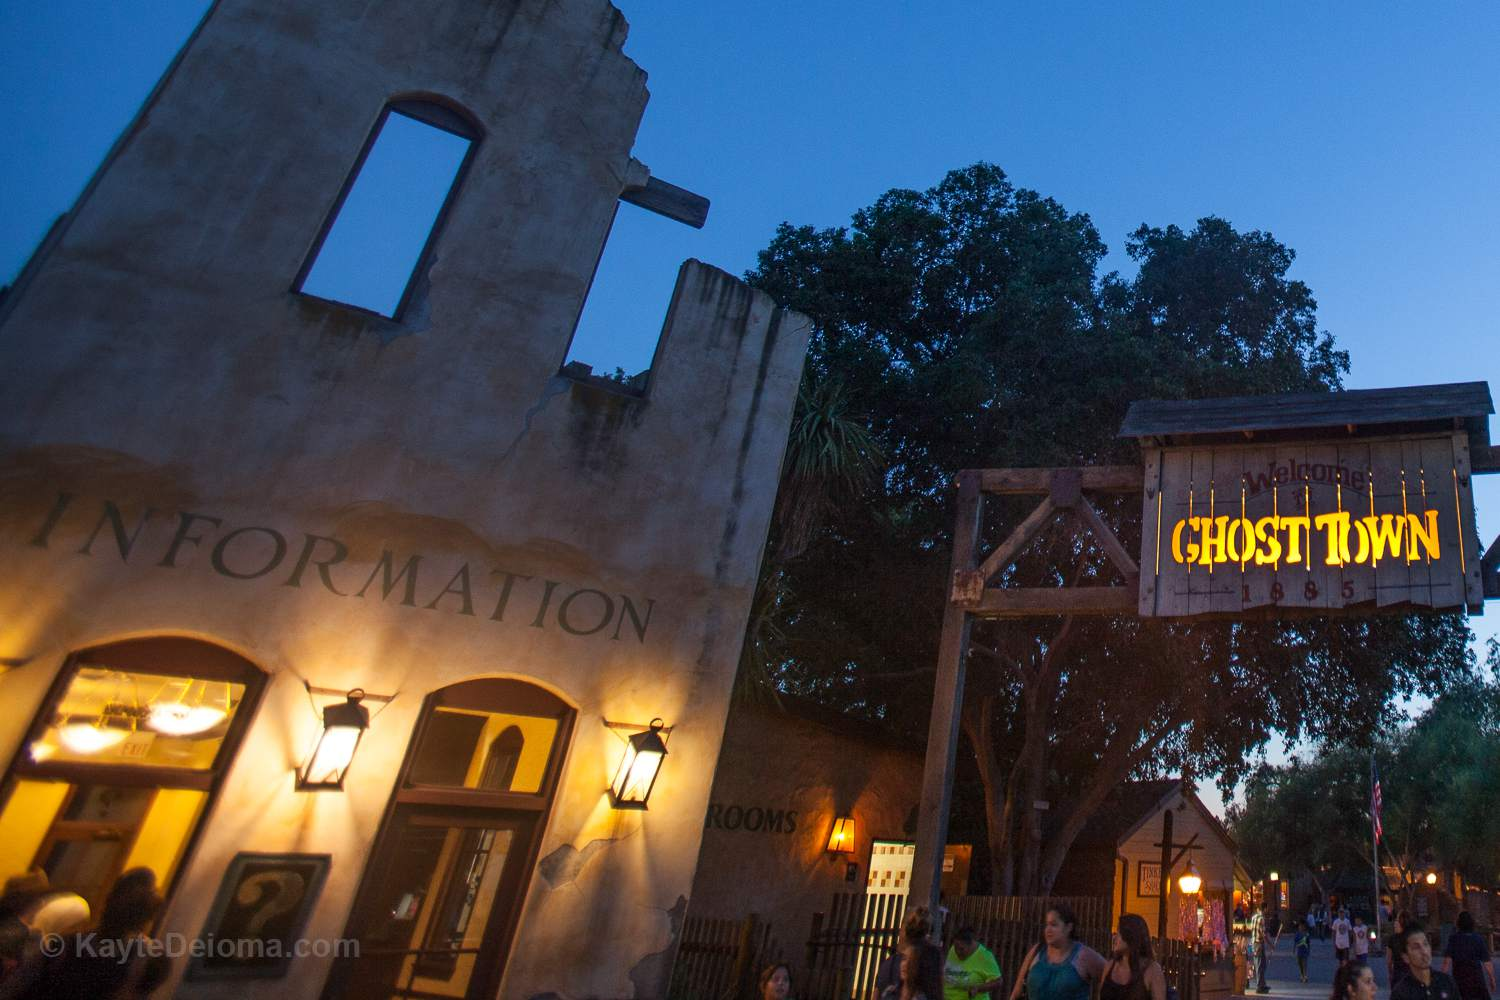 Information Office at Knott's Berry Farm